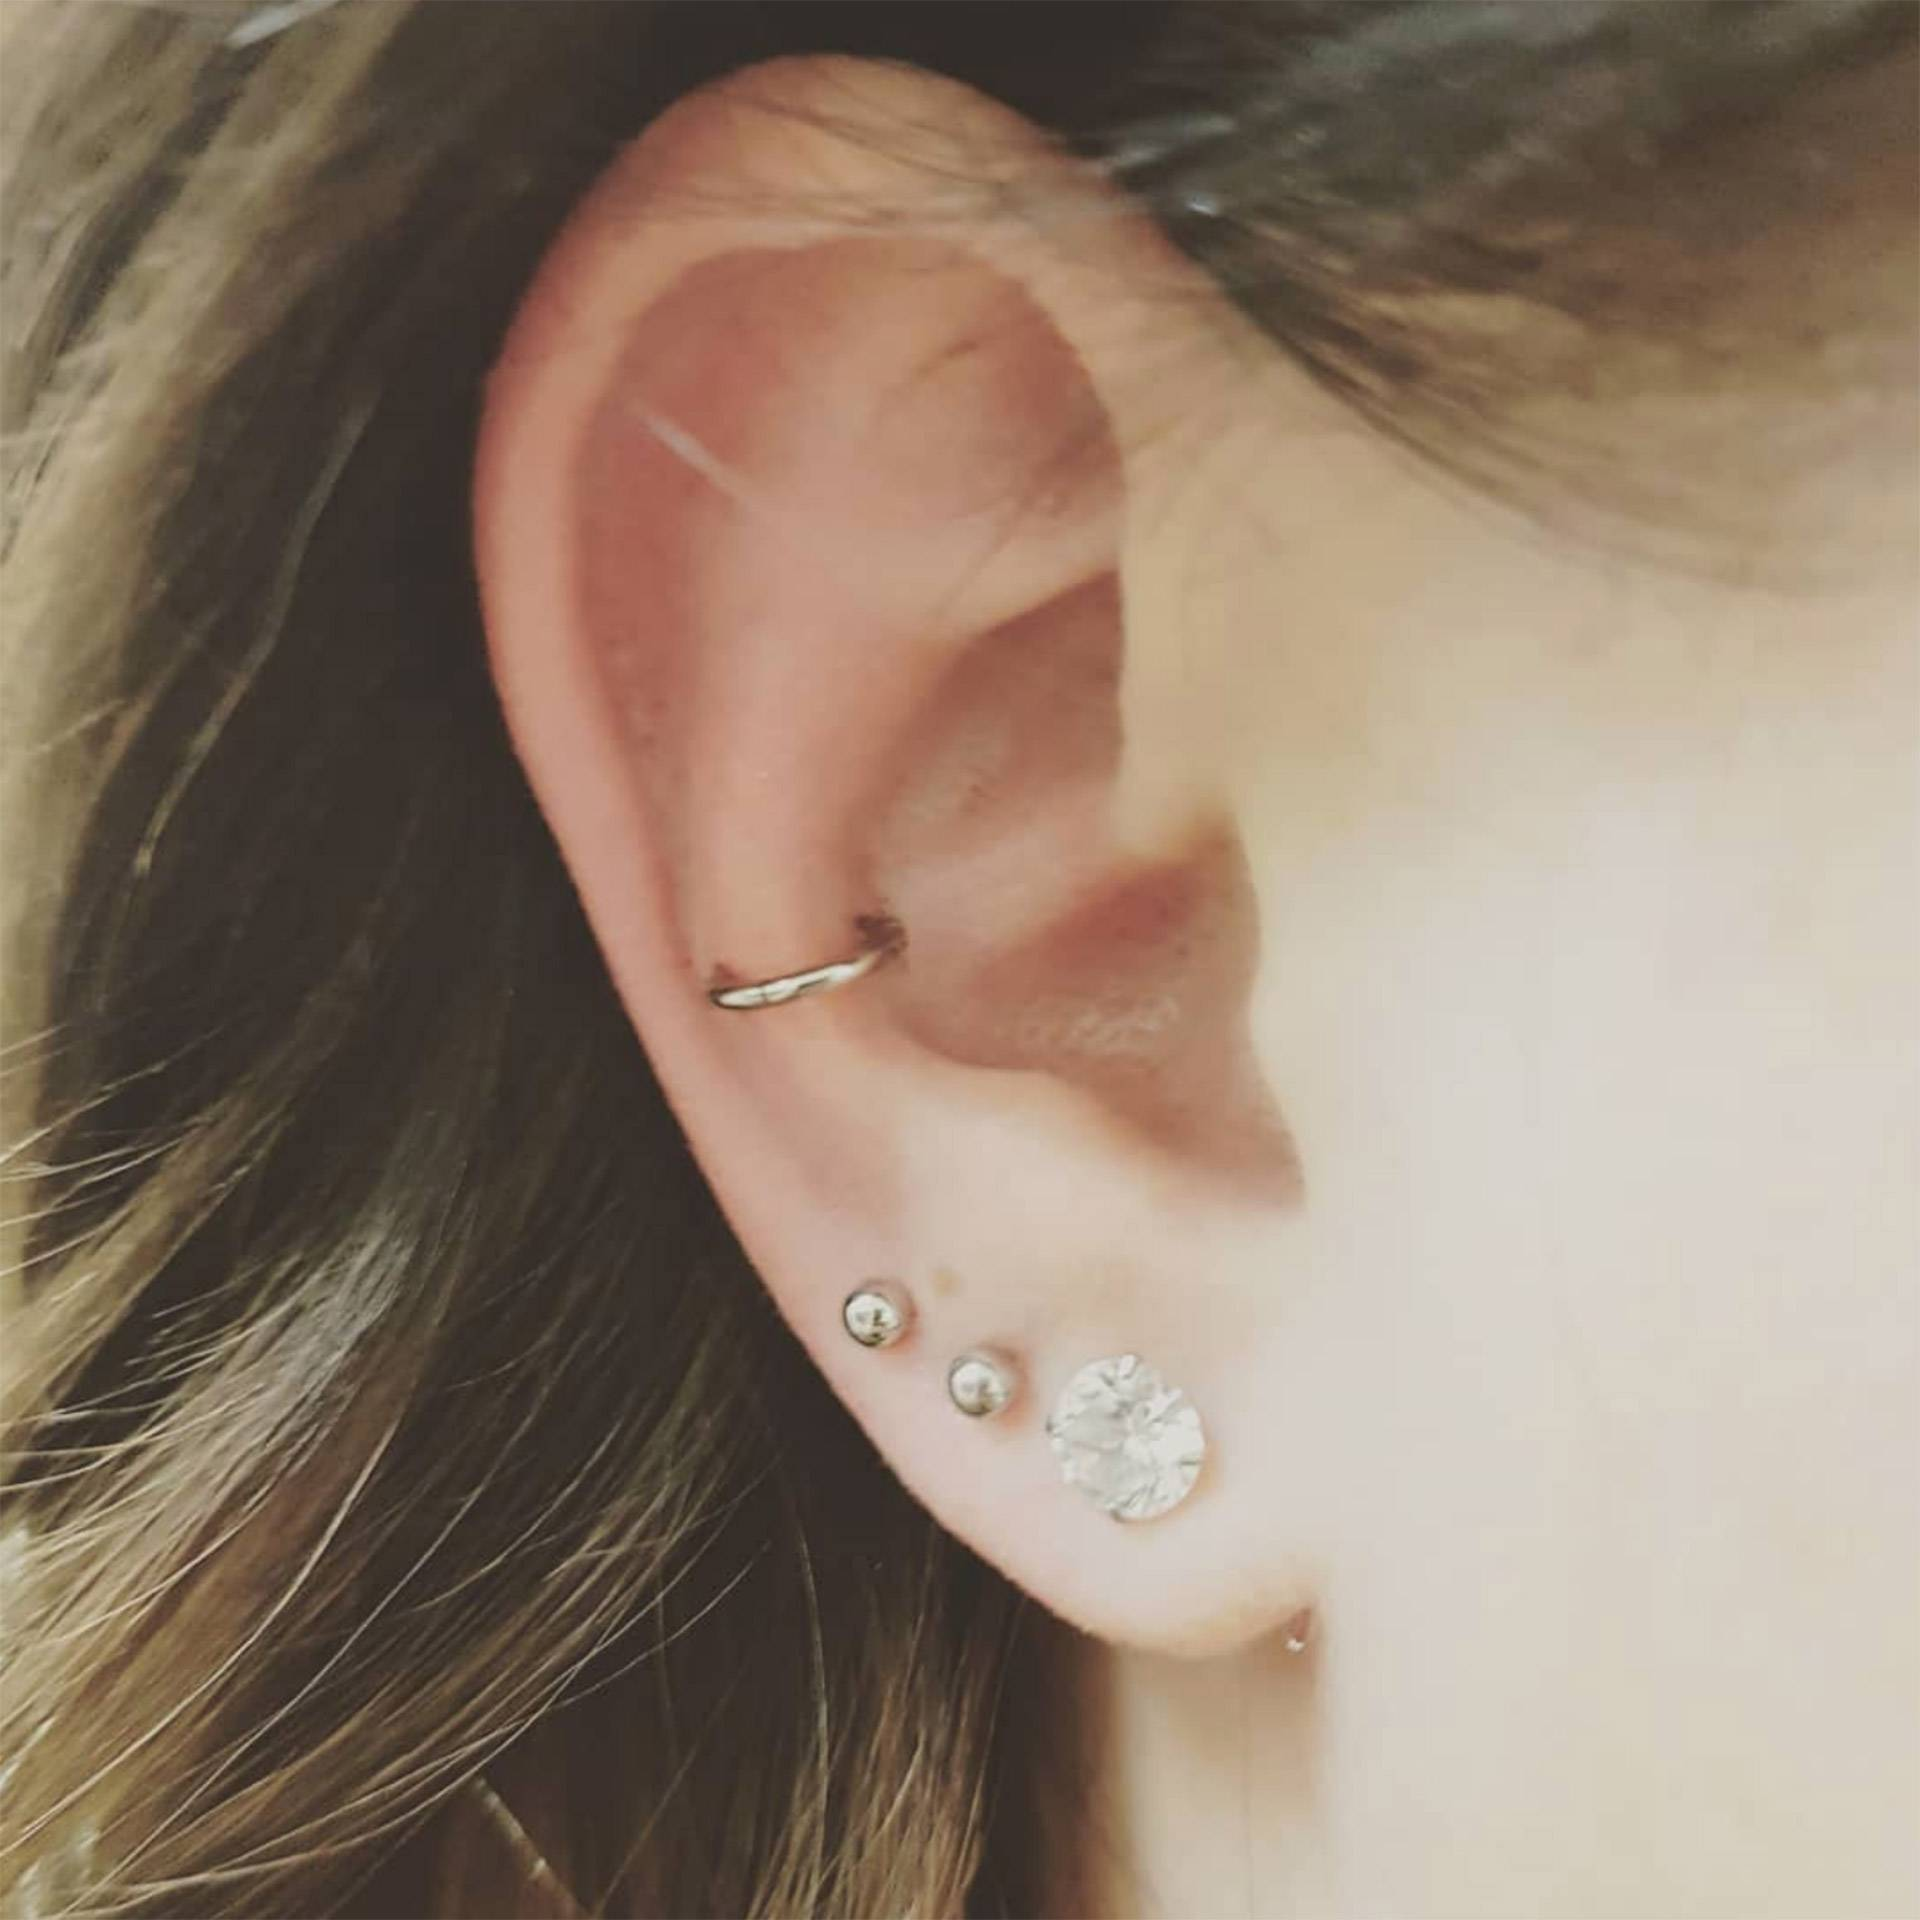 Types Of Ear Piercings How Much They Hurt Cost Glamour Uk